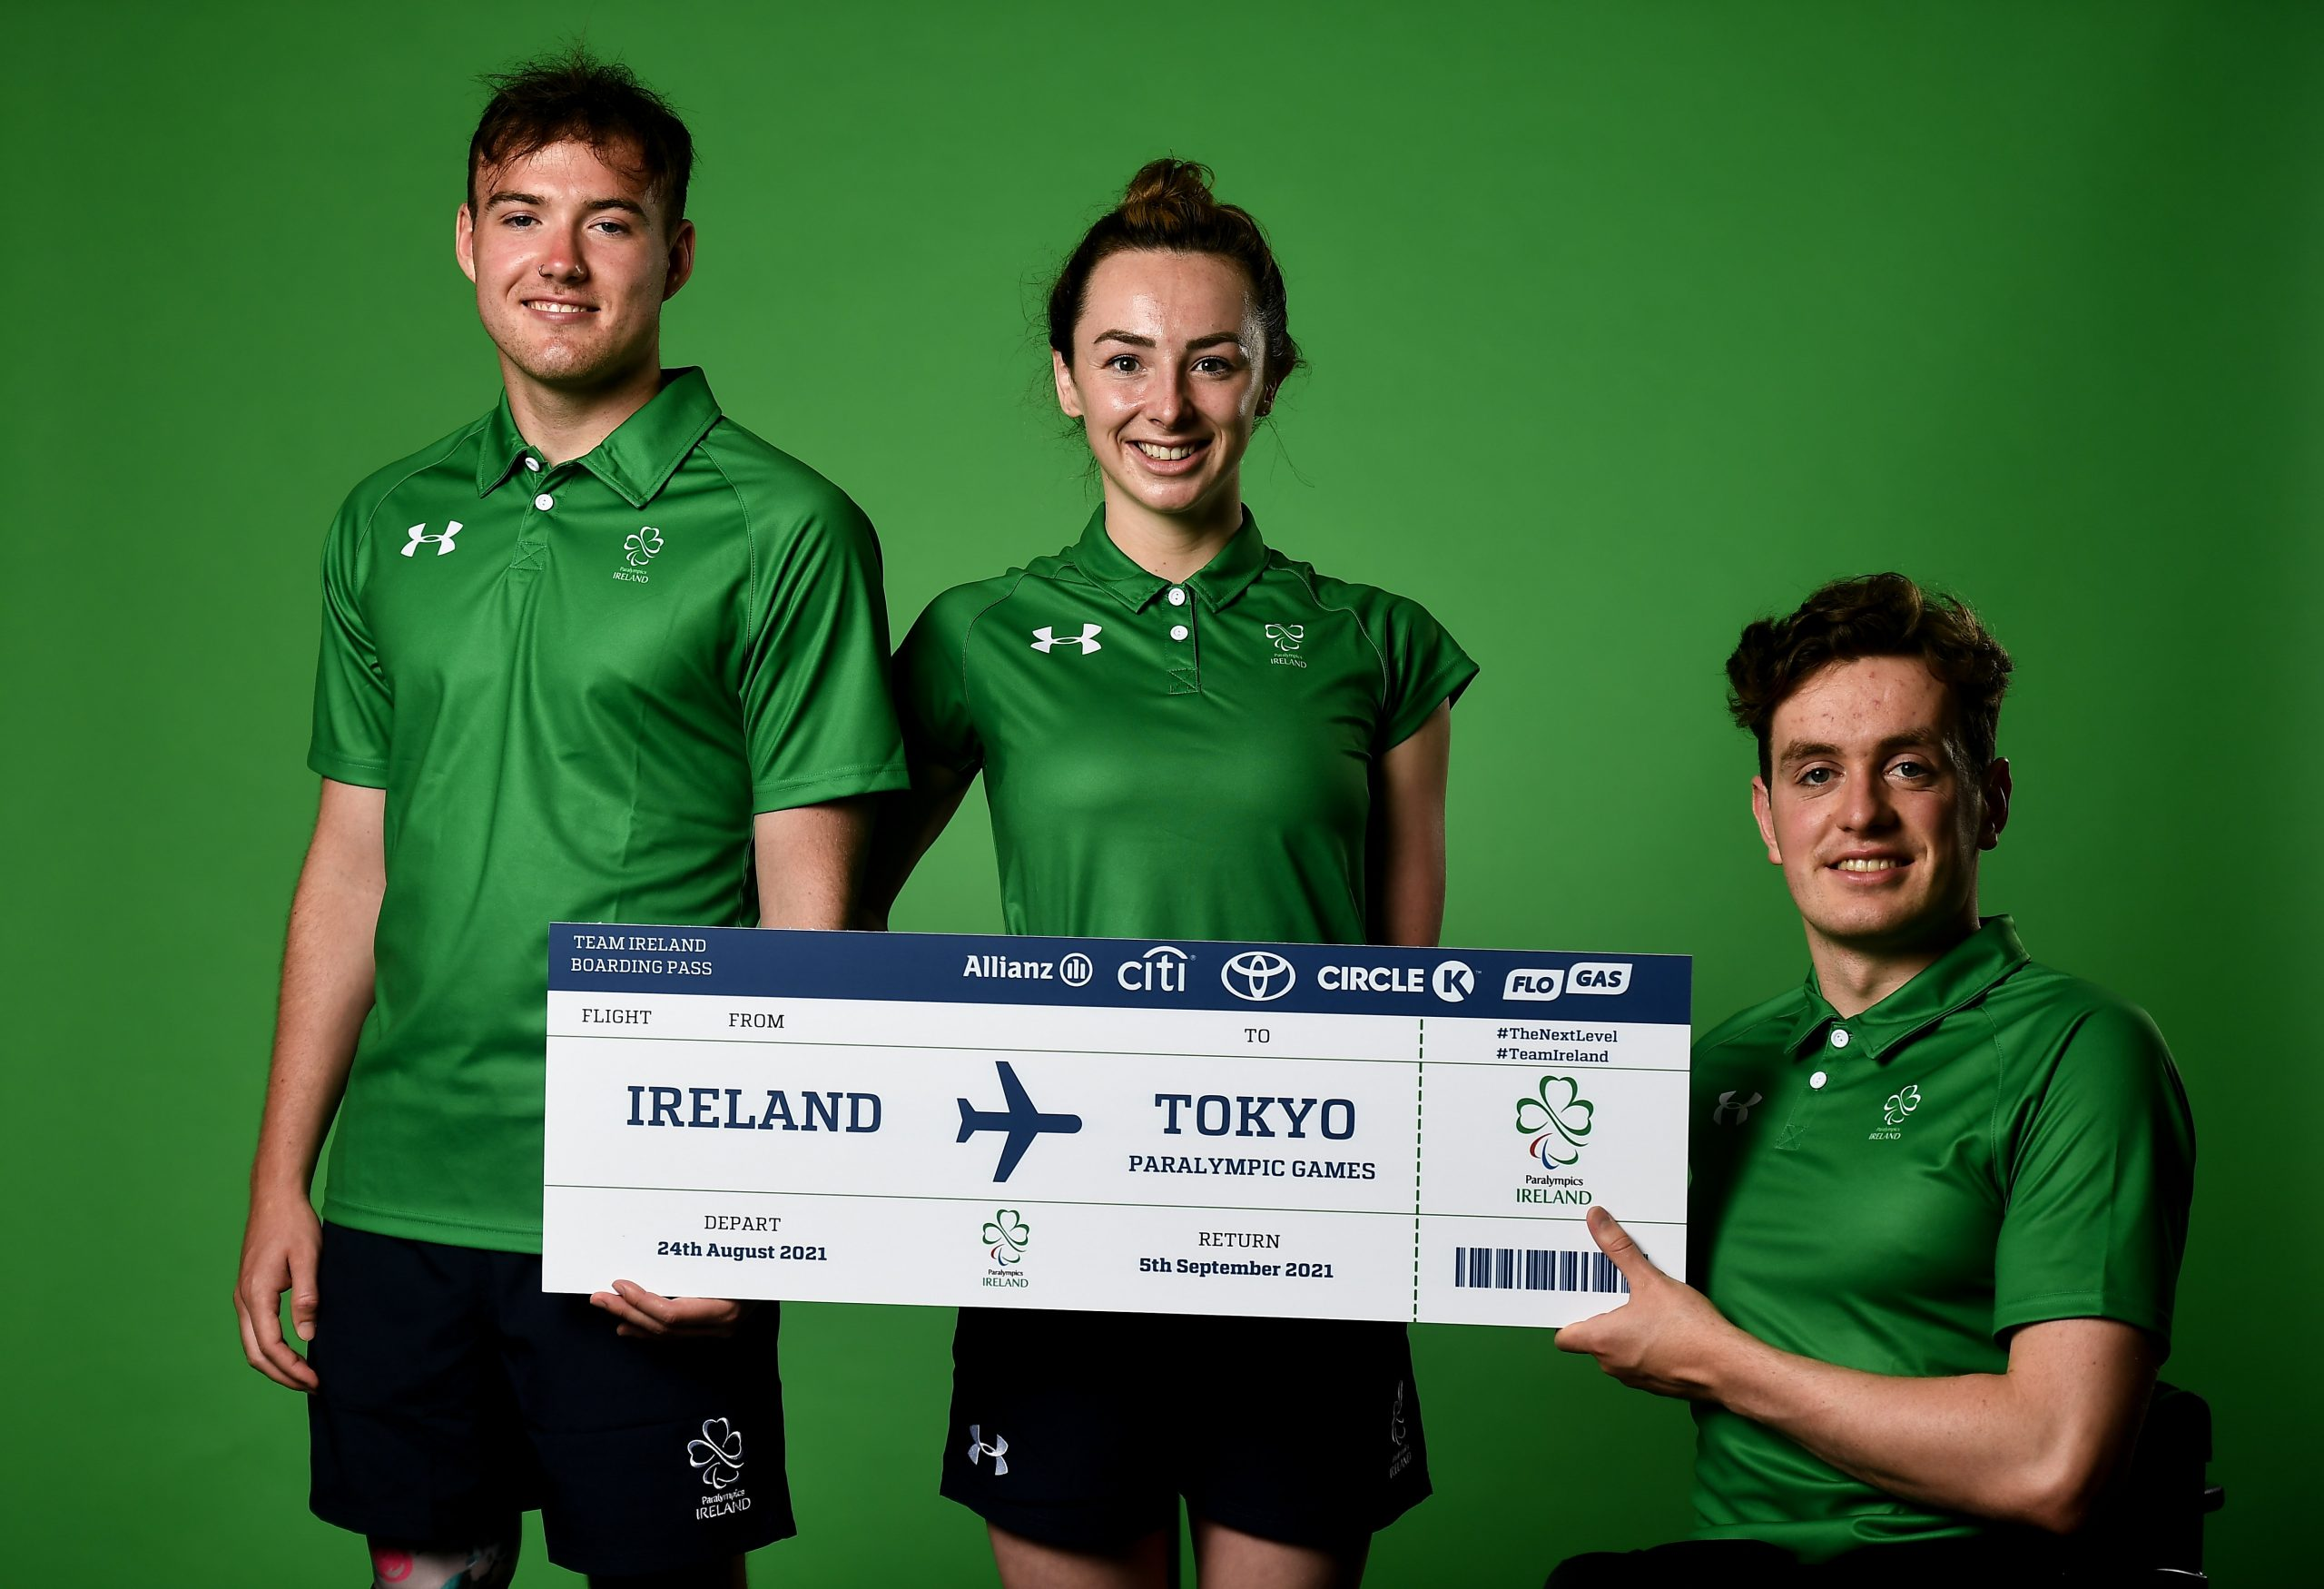 22 July 2021; Swimmers Barry McClements, left, Ellen Keane and Patrick Flanagan during a Tokyo 2020 Paralympic Games Team Announcement at Abbotstown in Dublin. Photo by David Fitzgerald/Sportsfile *** NO REPRODUCTION FEE ***